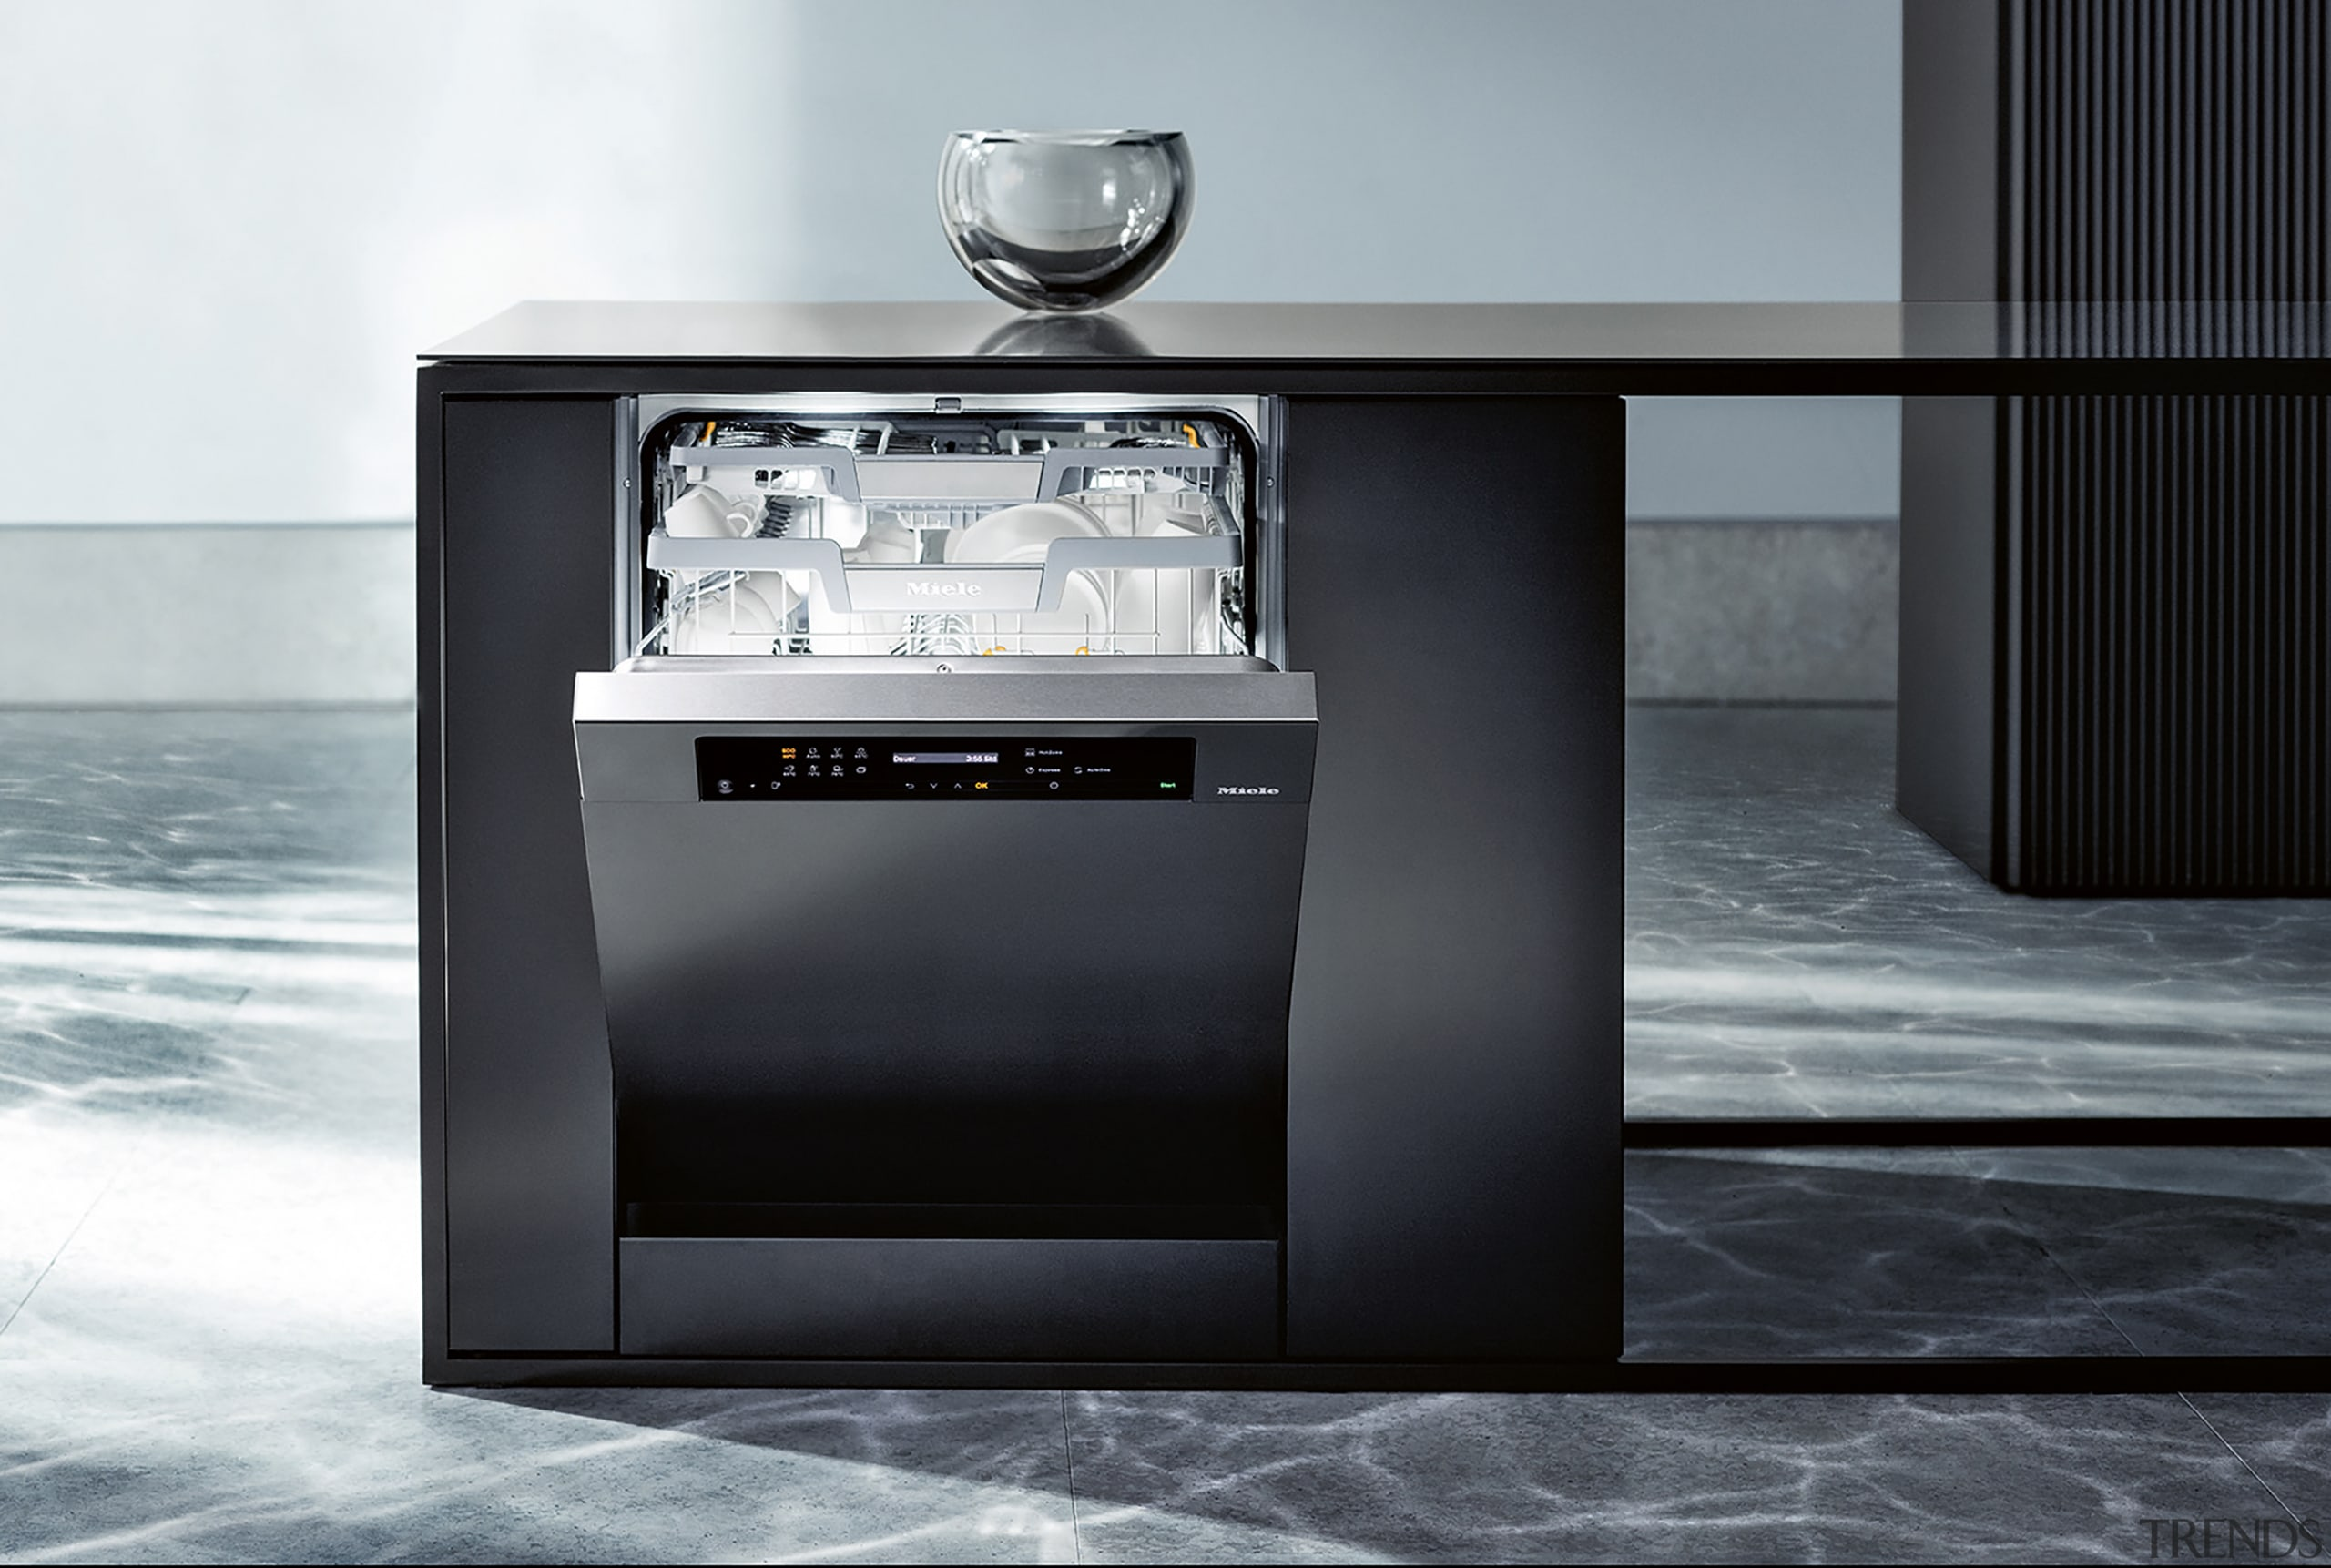 Controlled and accurate dishwasher dosing. - Miele G700 black, white